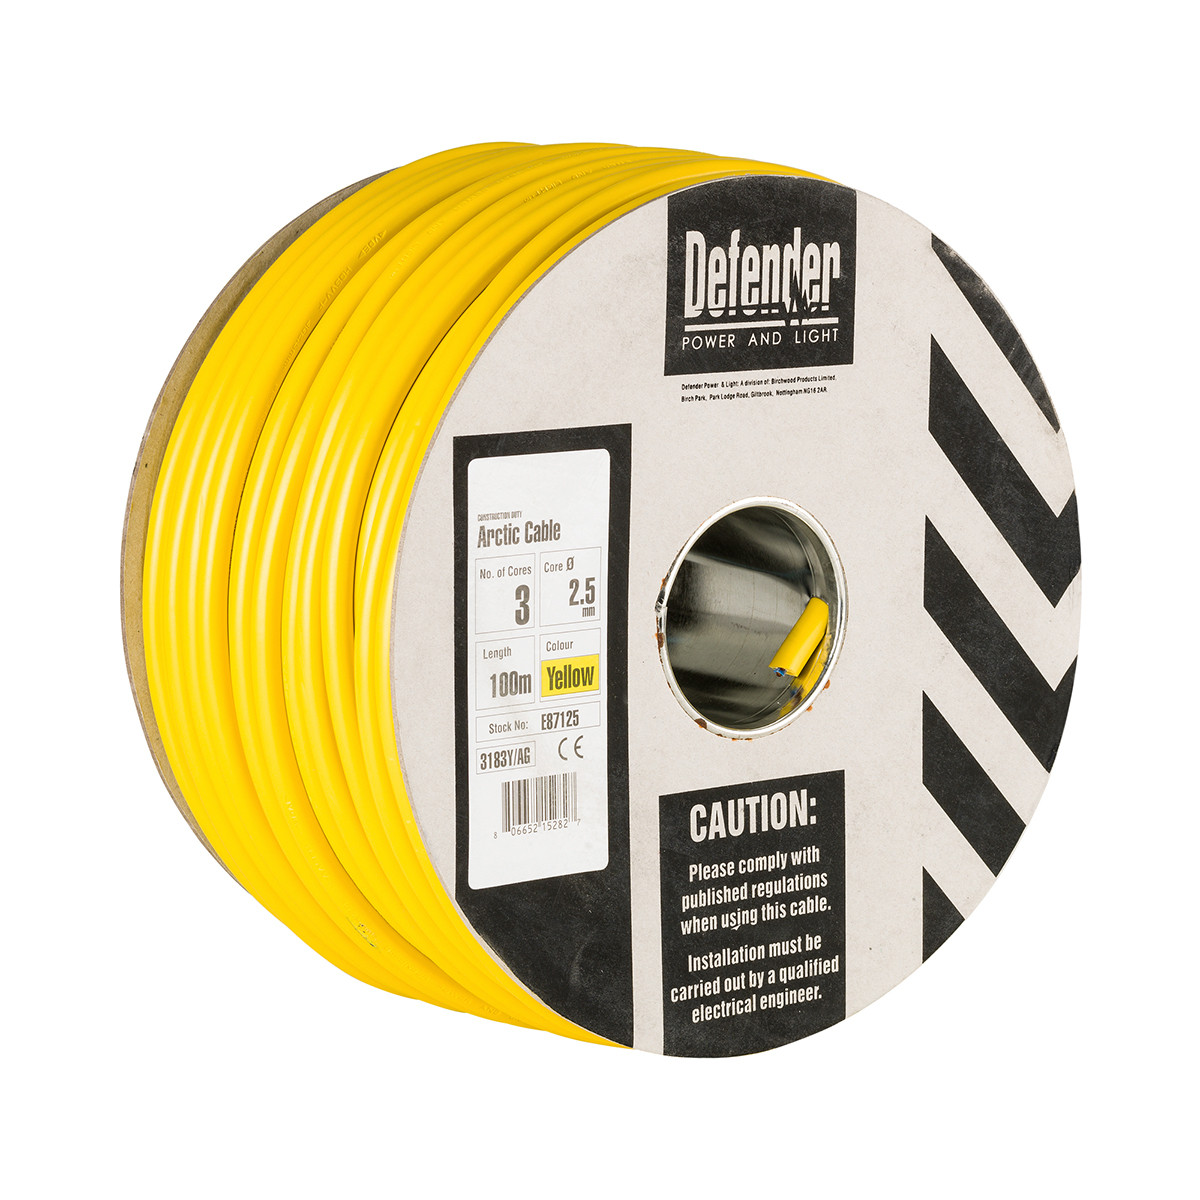 100M 2.5mm 3 Core 110V Cable